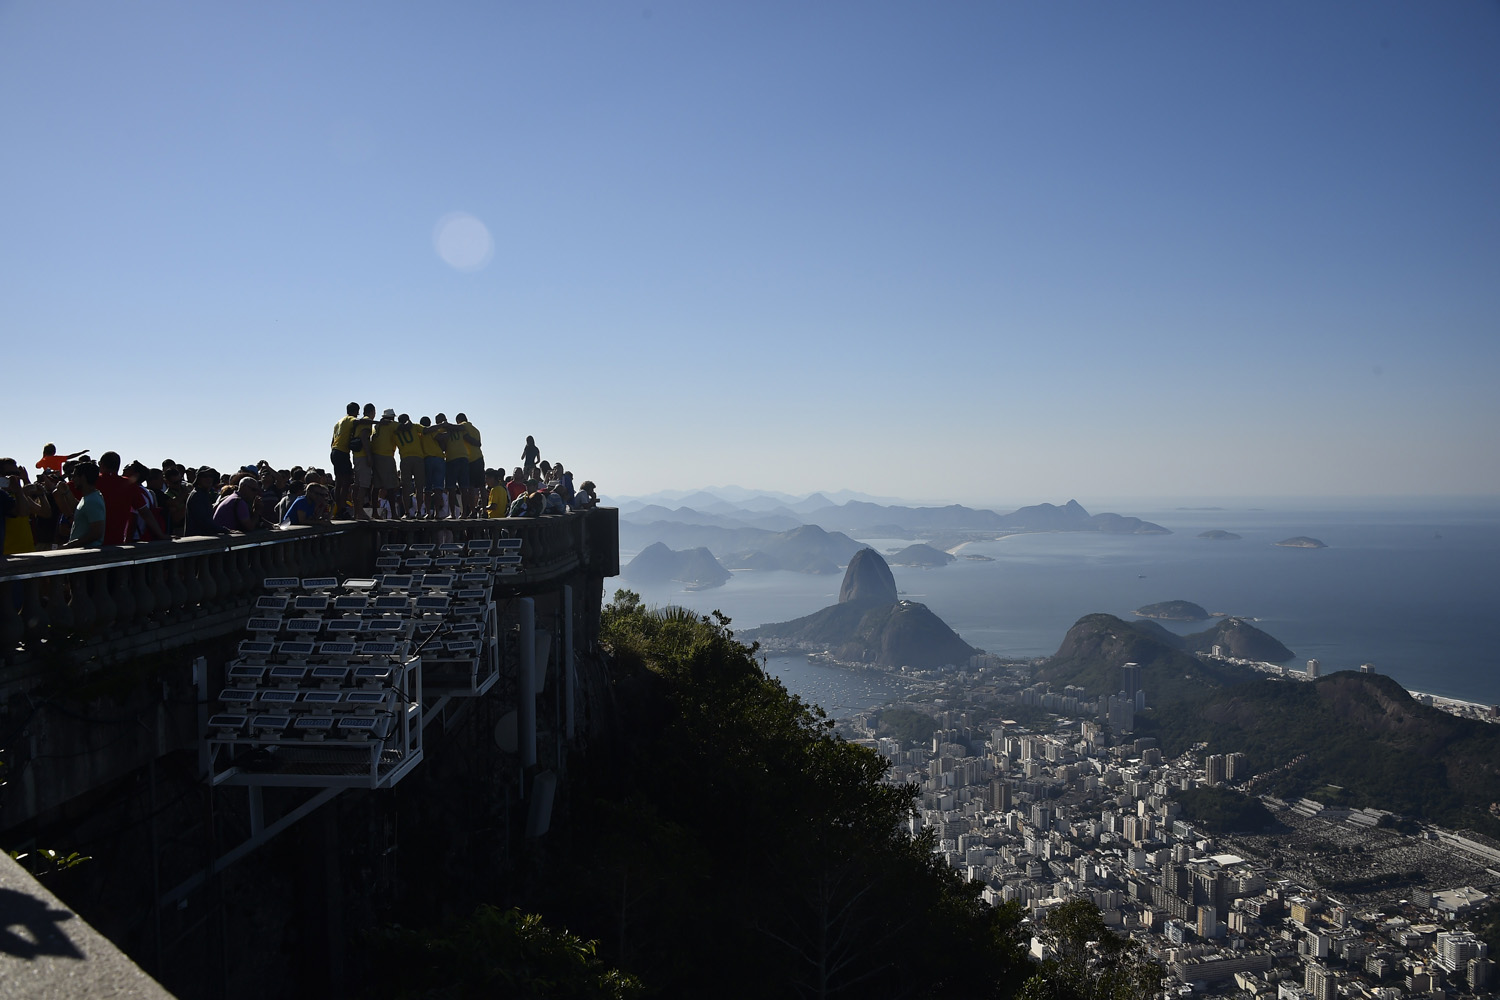 Jun. 24, 2014 Tourists visit the statue of Christ the Redeemer atop Corcovado hill in Rio de Janeiro  on the eve of a Group E football match between France and Ecuador during the 2014 FIFA World Cup.